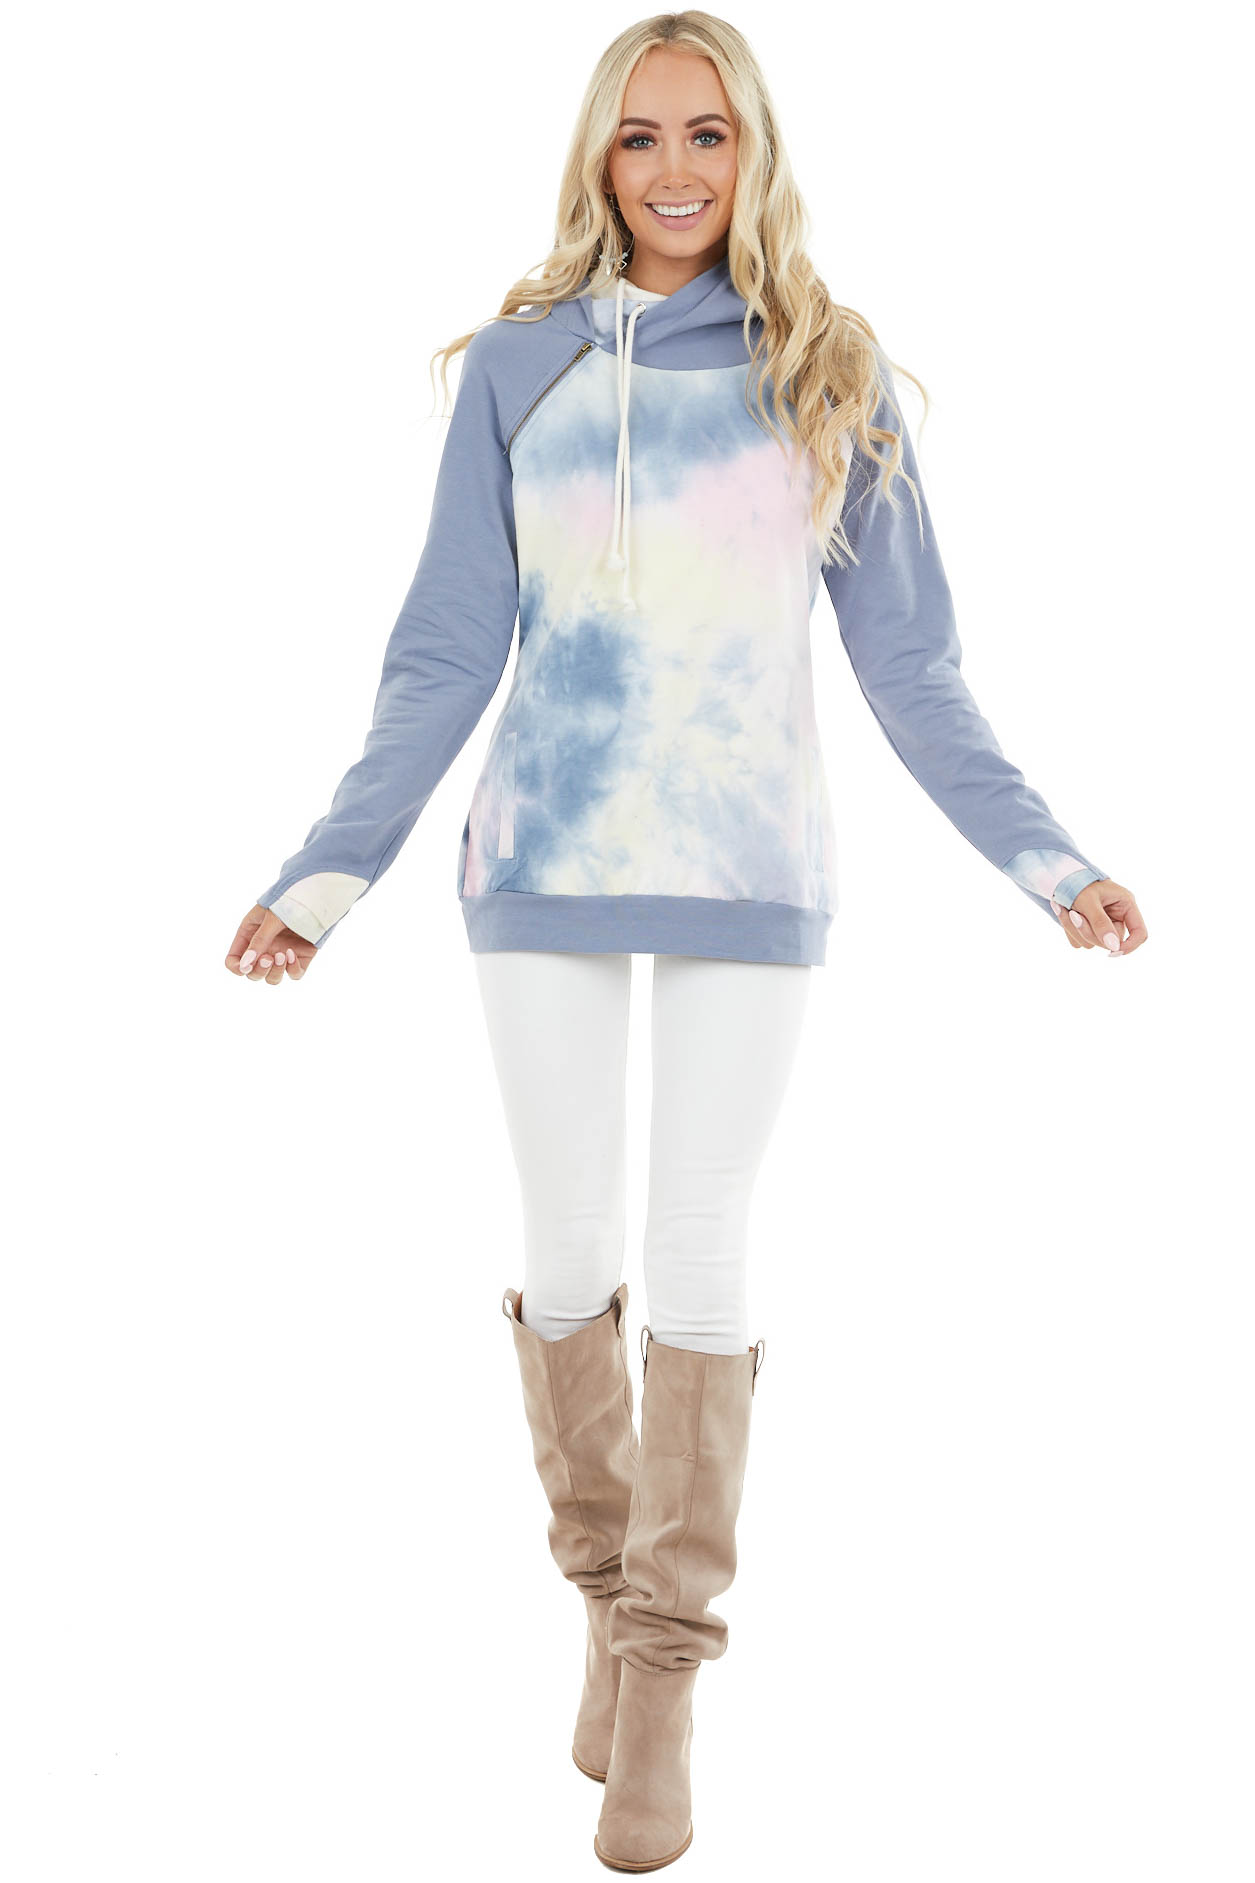 Slate Blue Hoodie with Tie Dye Contrast and Front Pockets